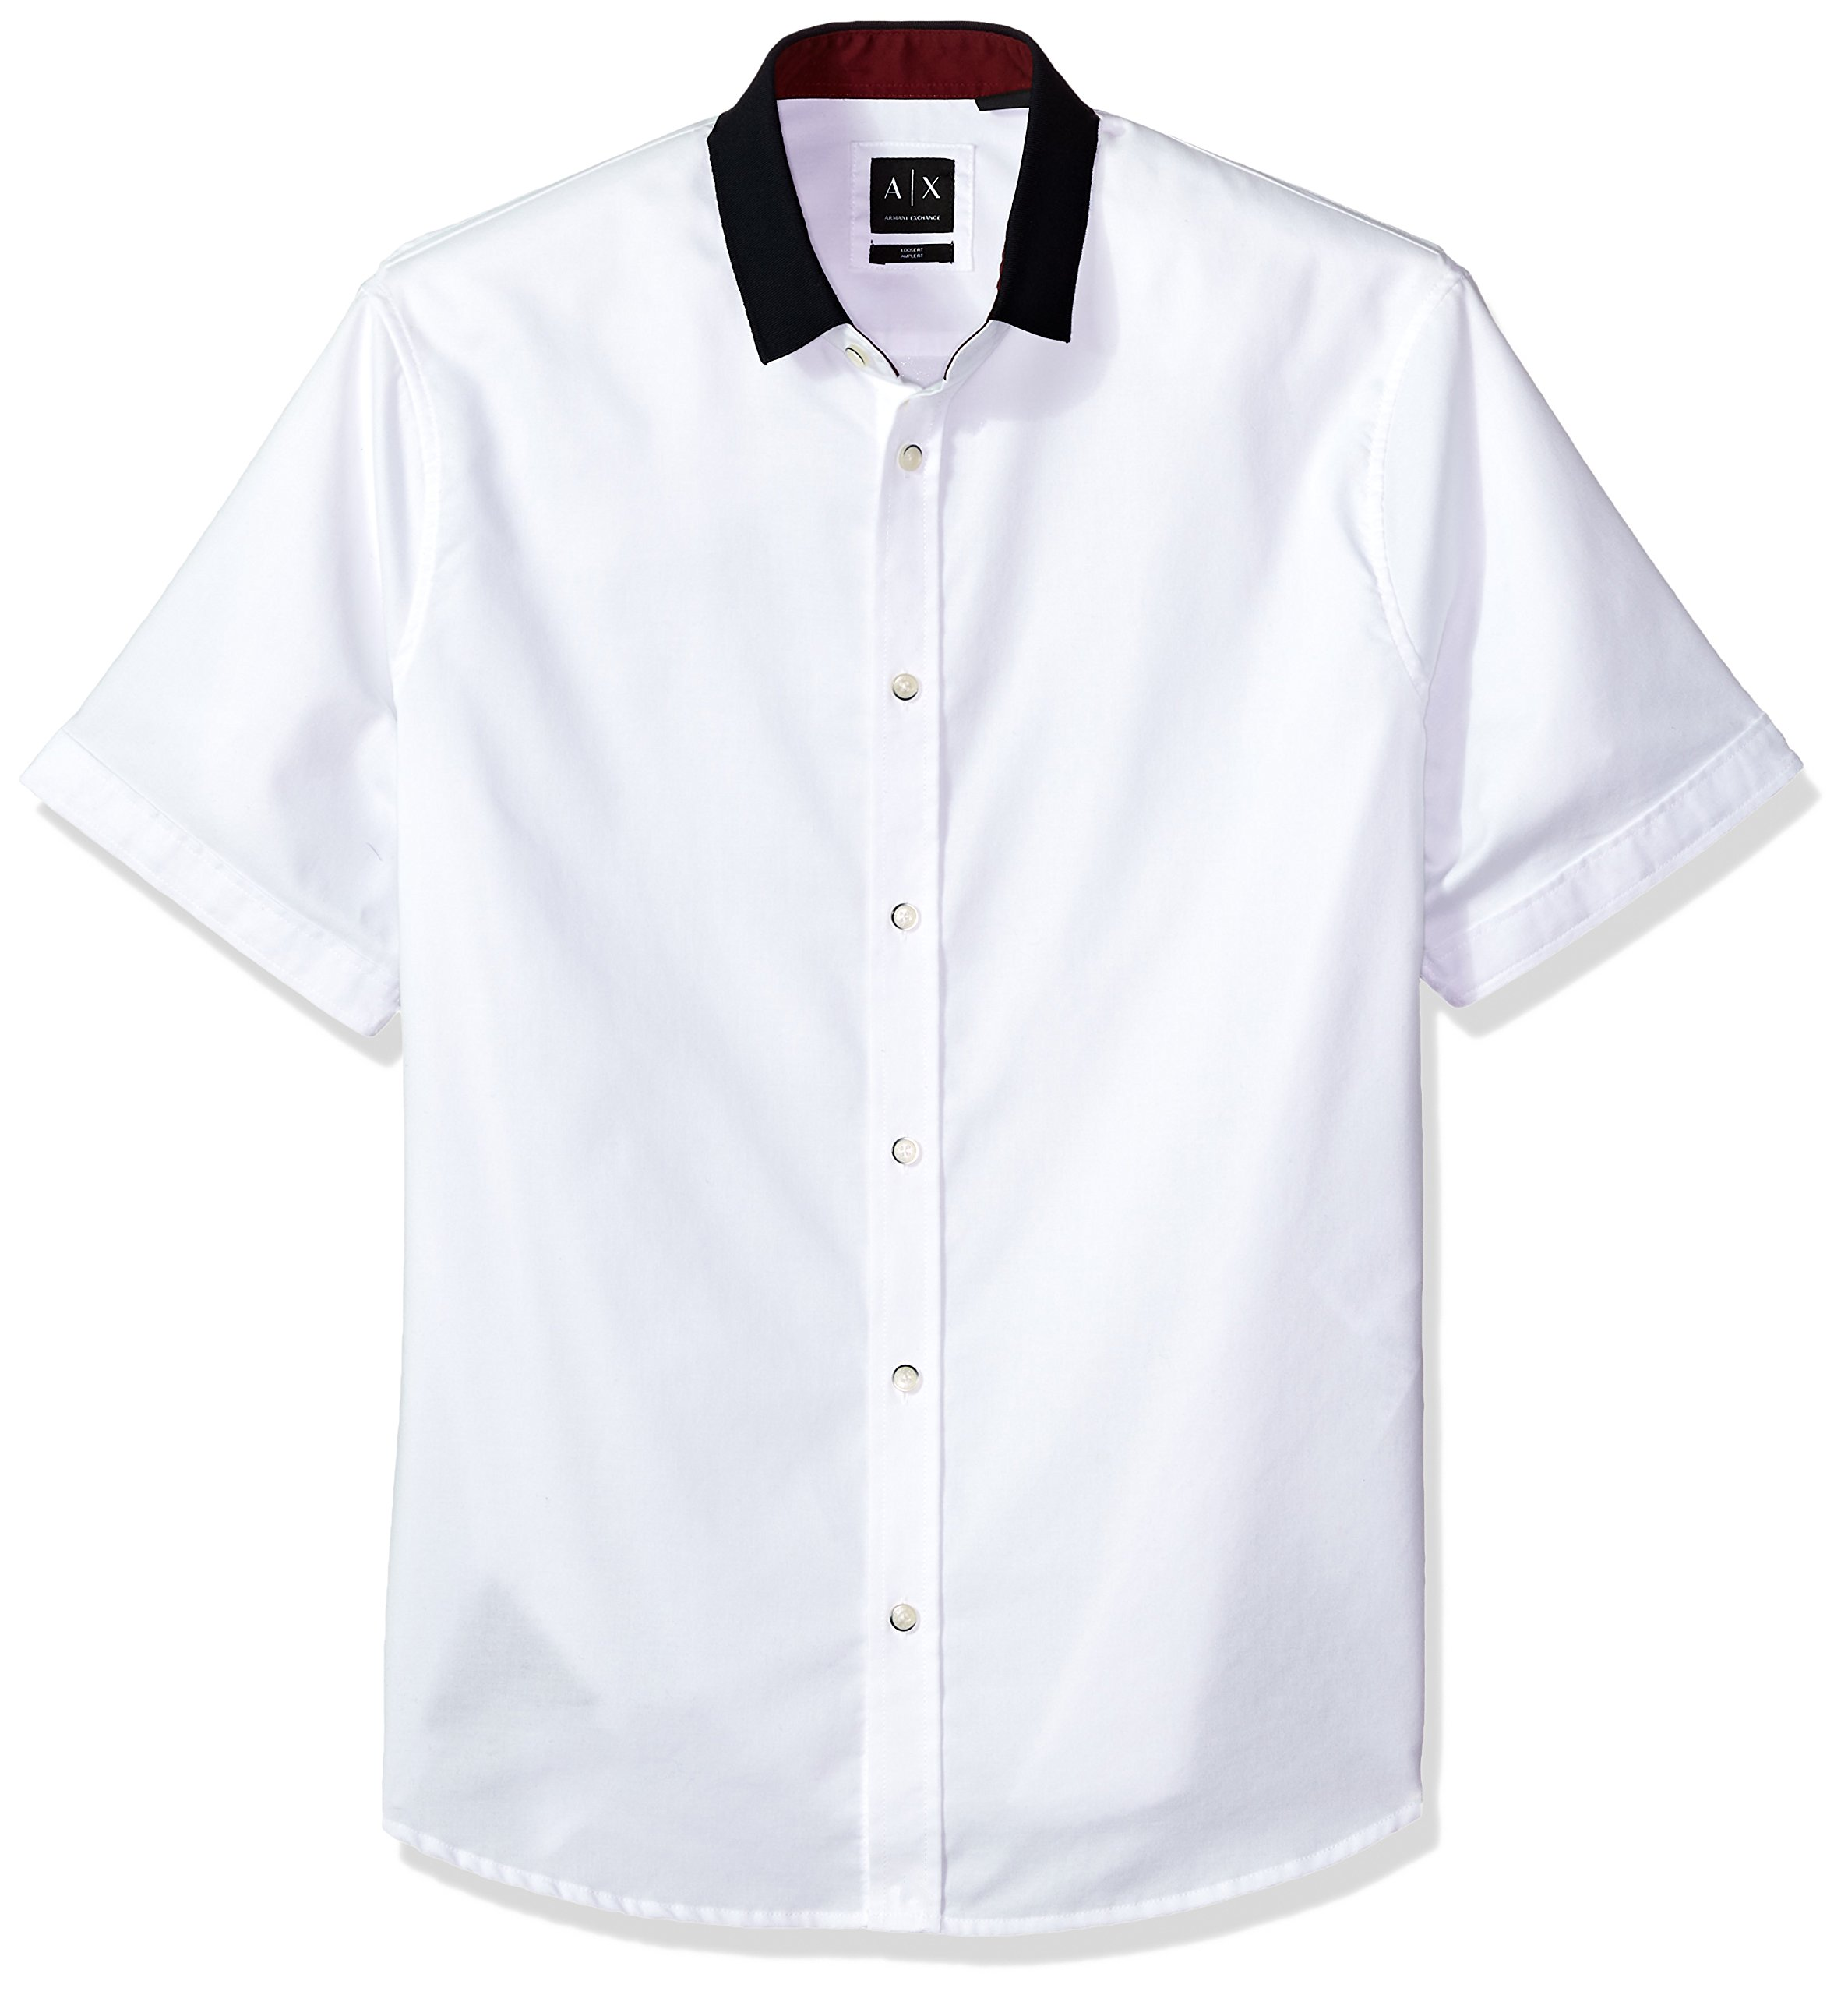 A|X Armani Exchange Men's Short Sleeve Shirt with Solid Colar, White, L